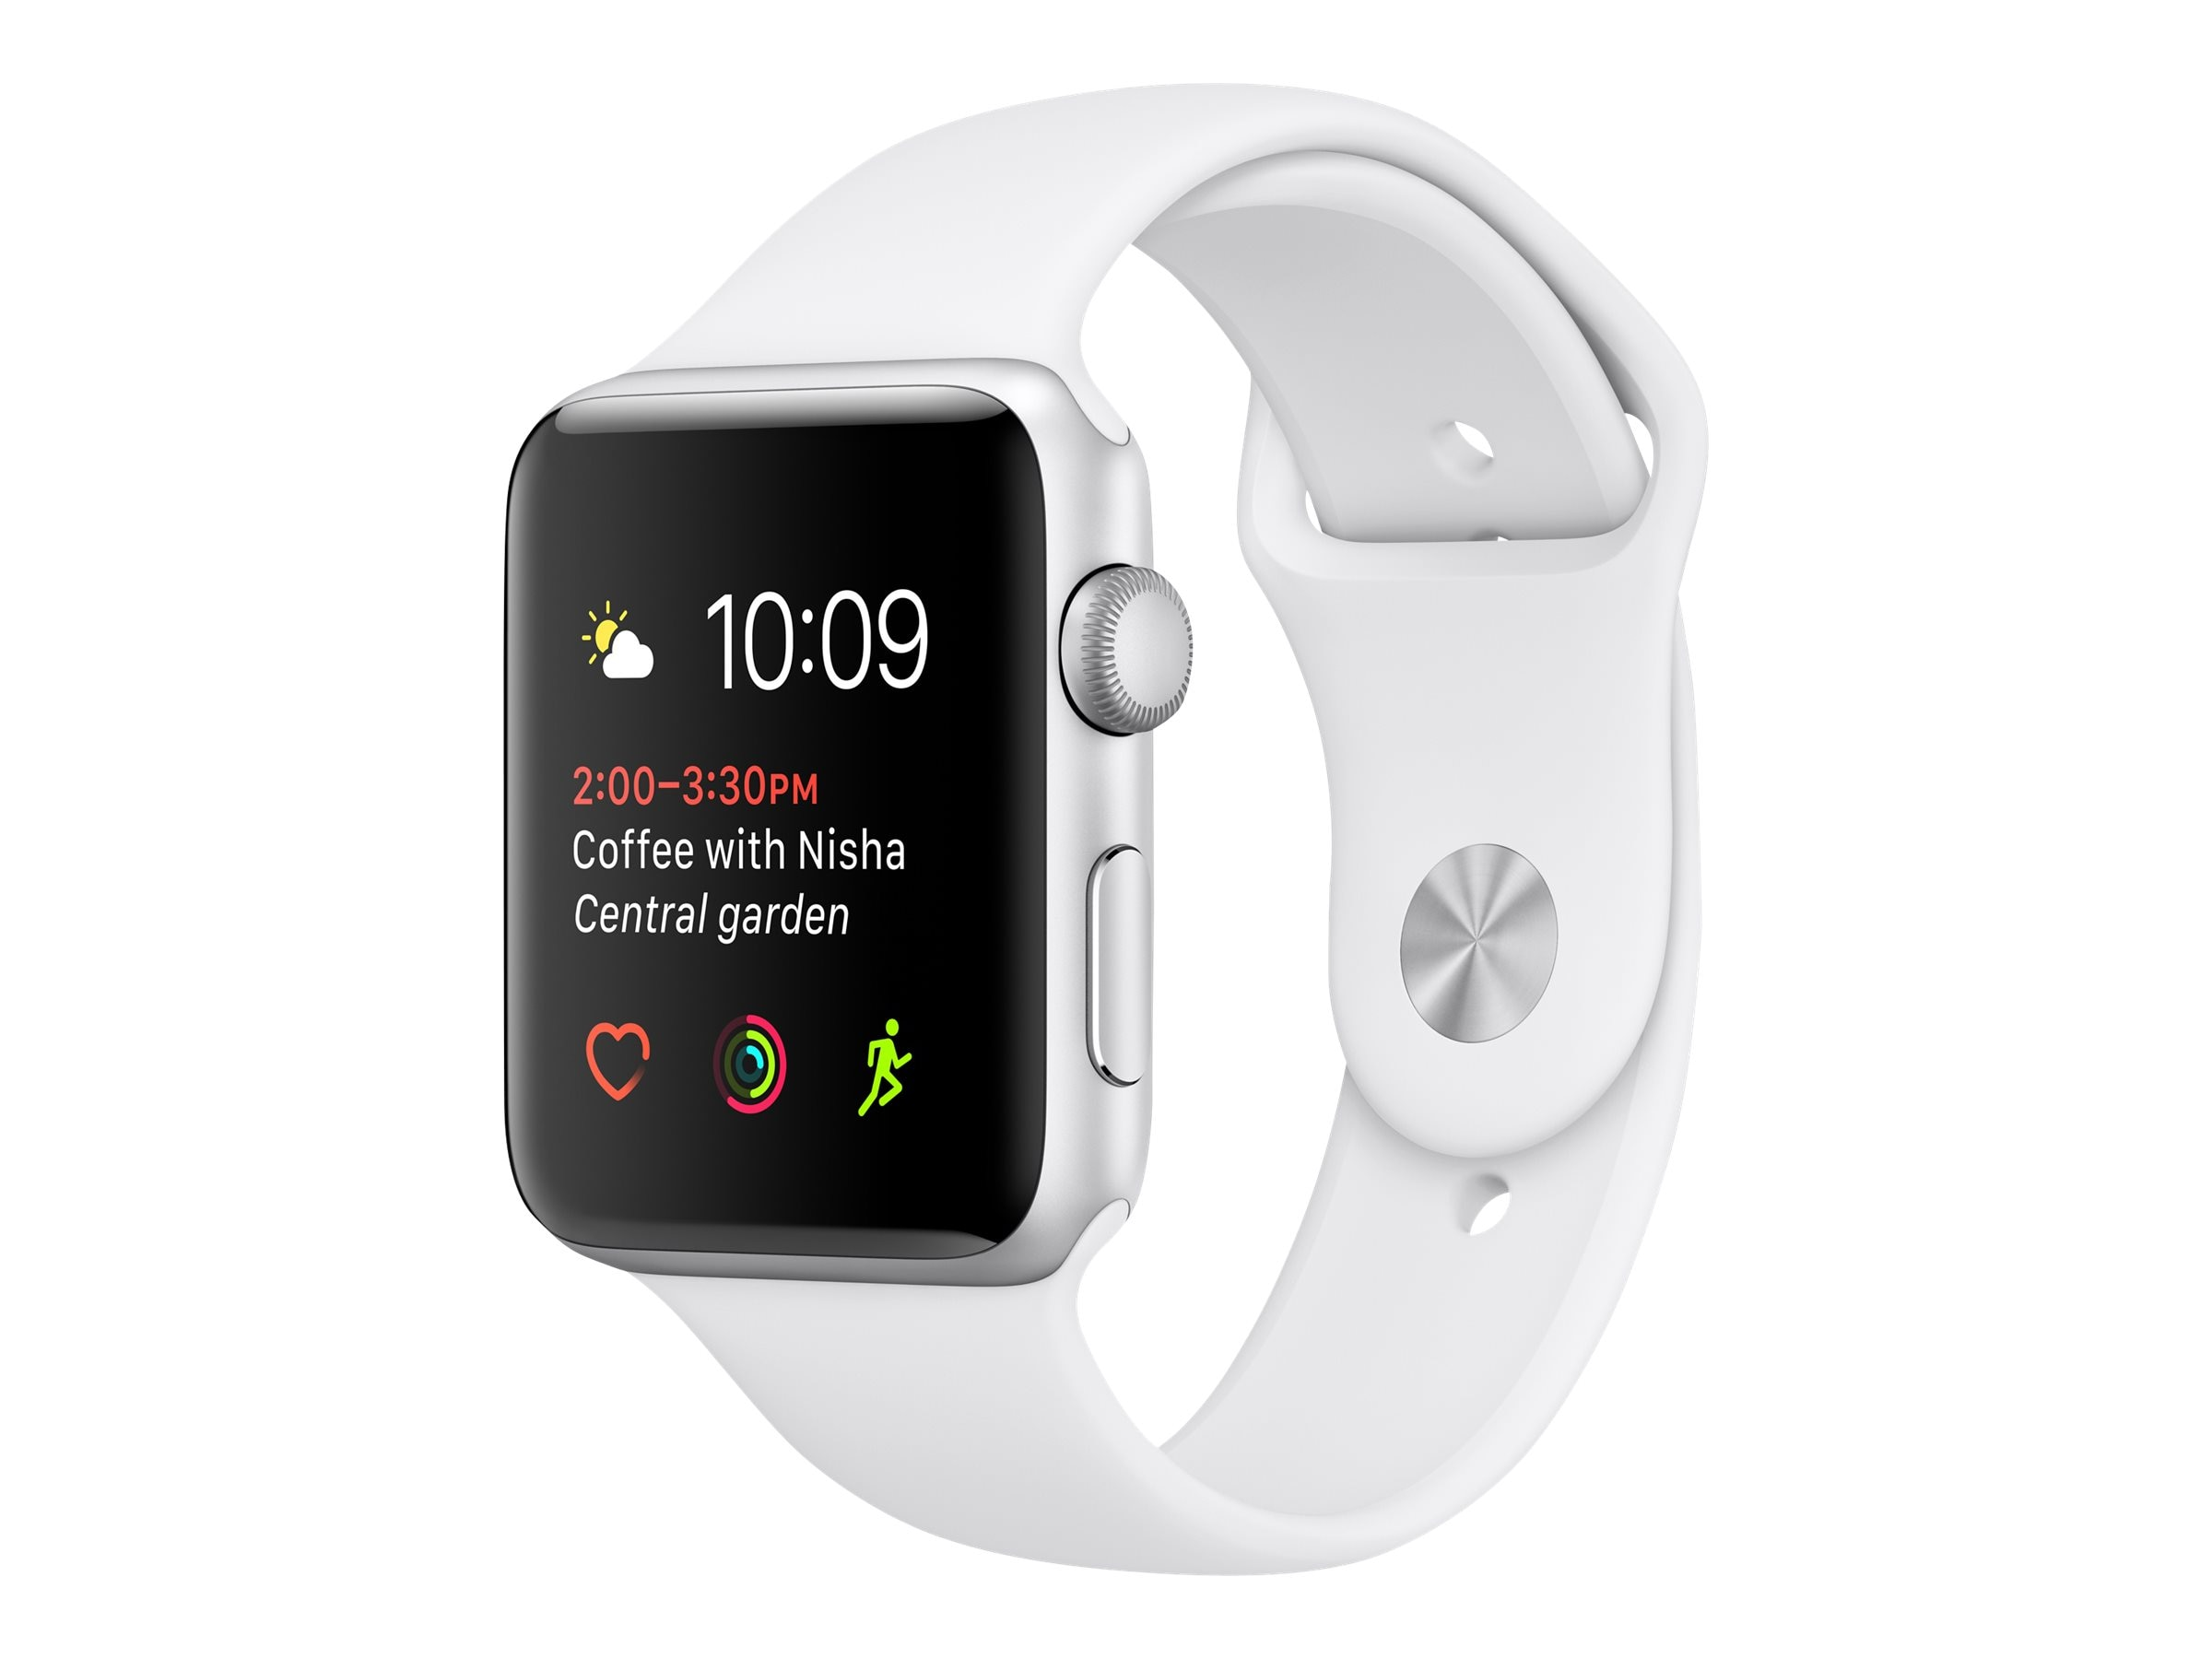 Apple Watch Series 1, 42mm, Silver Aluminum Case with White Sport Band, MNNL2LL/A, 32658659, Wearable Technology - Apple